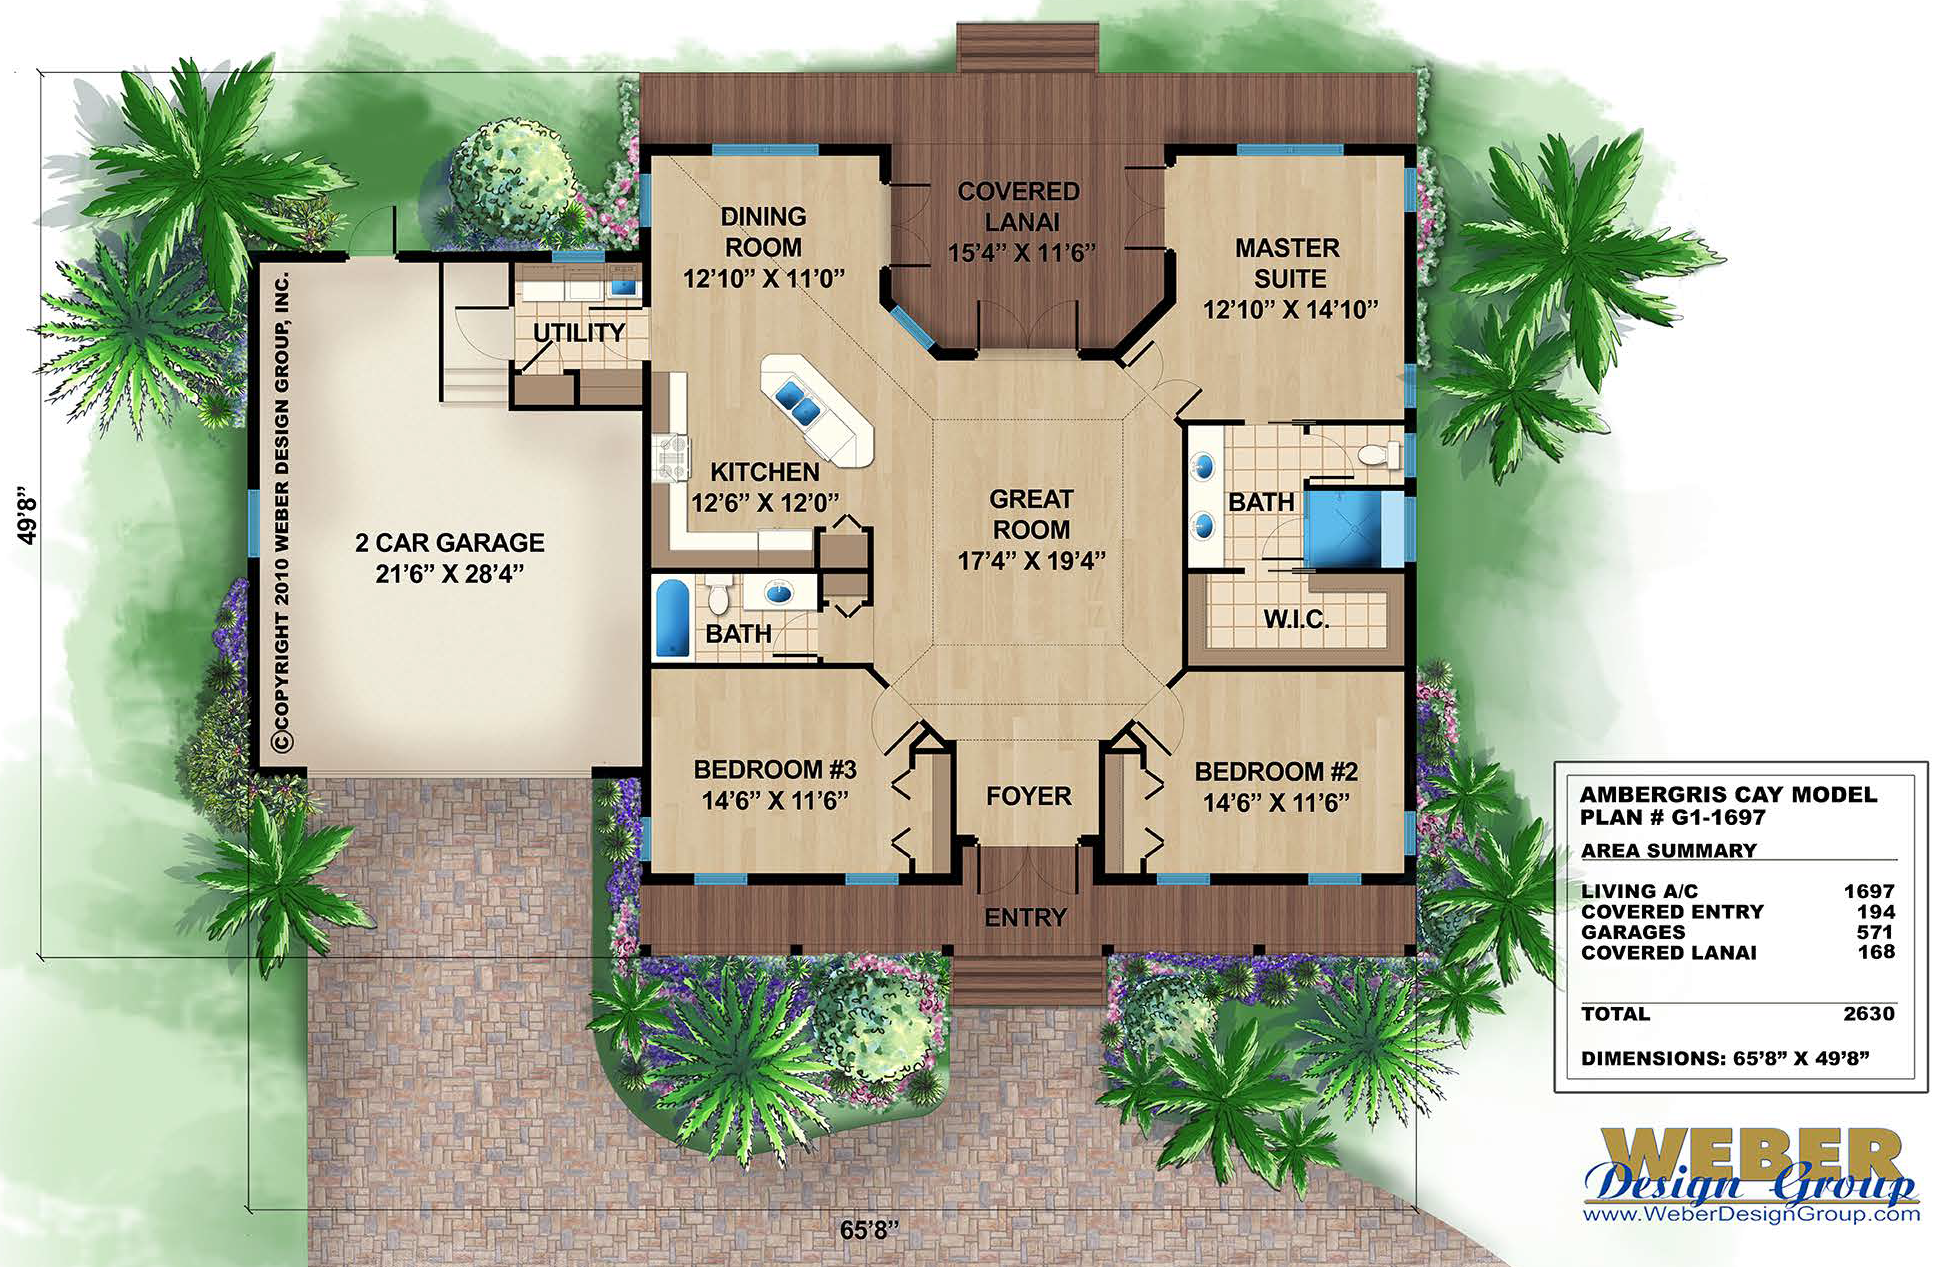 Beach House Plan 1 Story Old Florida Style Coastal Home Floor Plan Beach House Floor Plans Beach Style House Plans Key West House